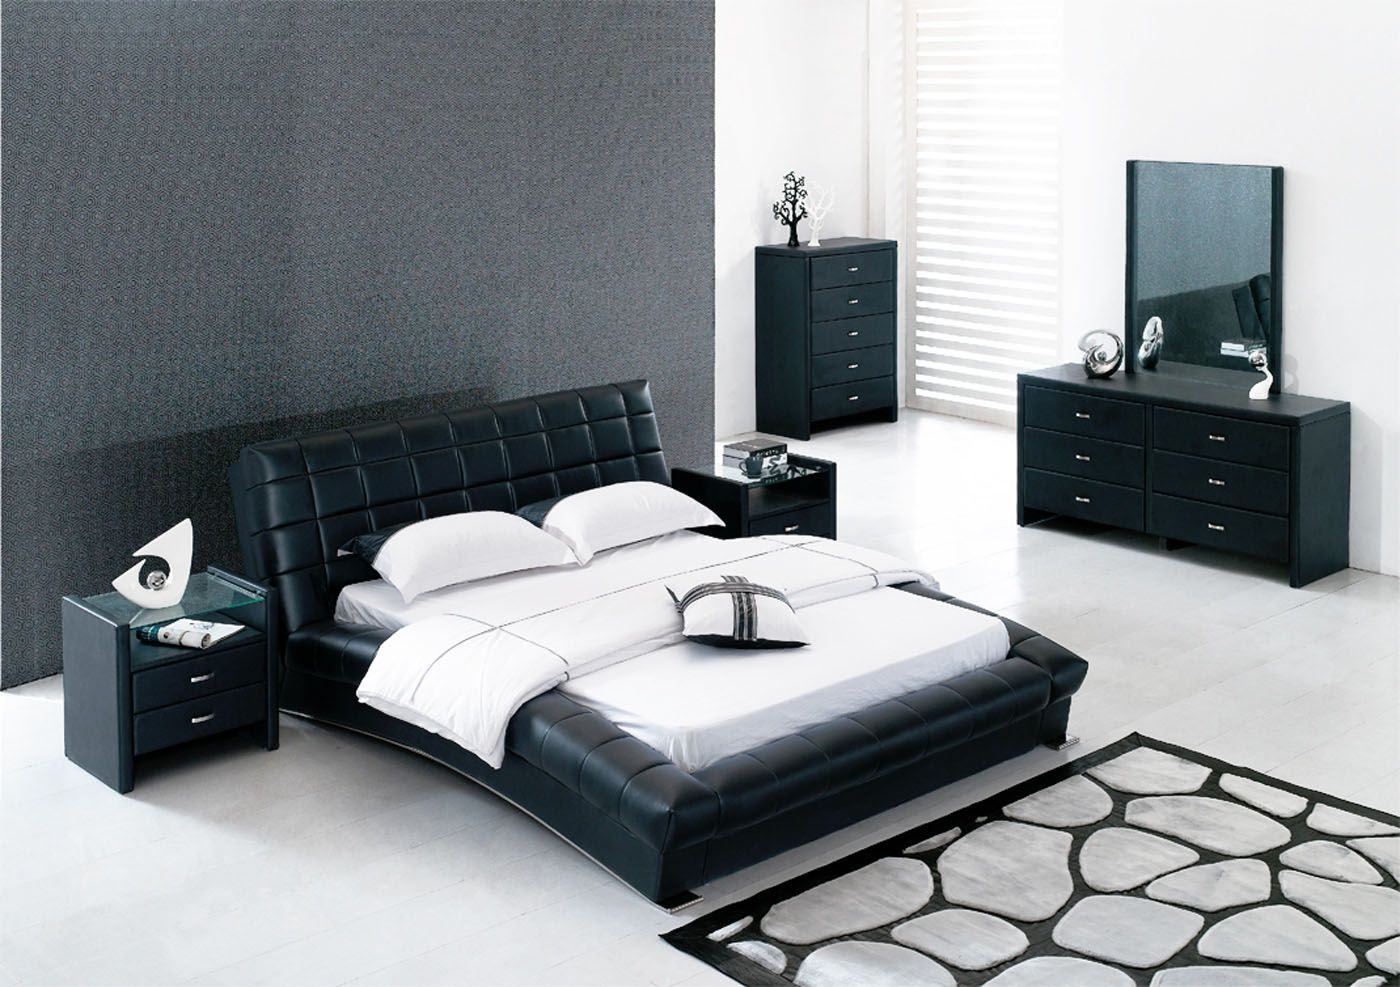 Bachelor Bedroom Sets. bachelors bedroom bachelor pad 6 ...